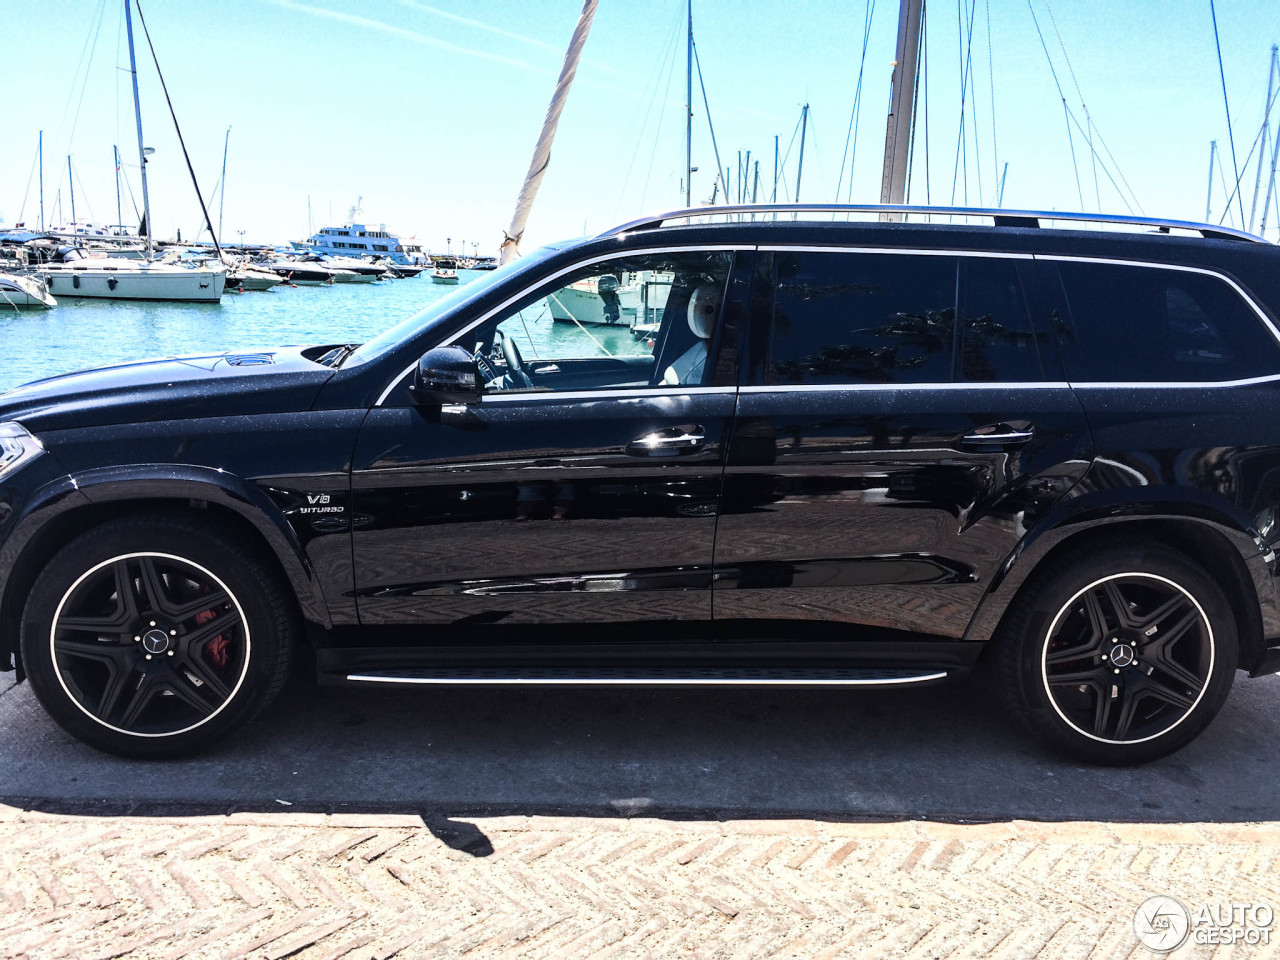 Mercedes benz gl 63 amg x166 5 september 2015 autogespot for Mercedes benz gl550 price